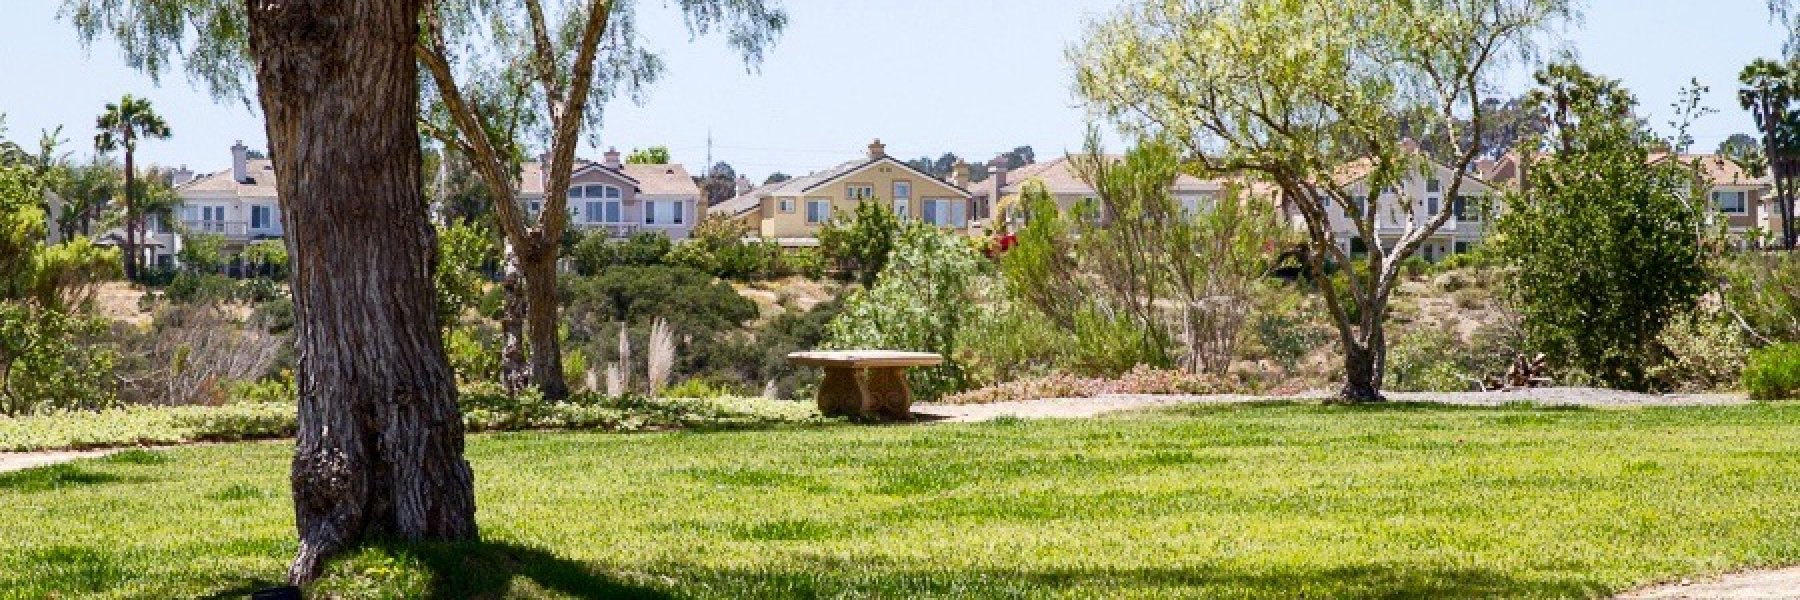 Seabreeze is a community of homes in San Diego California